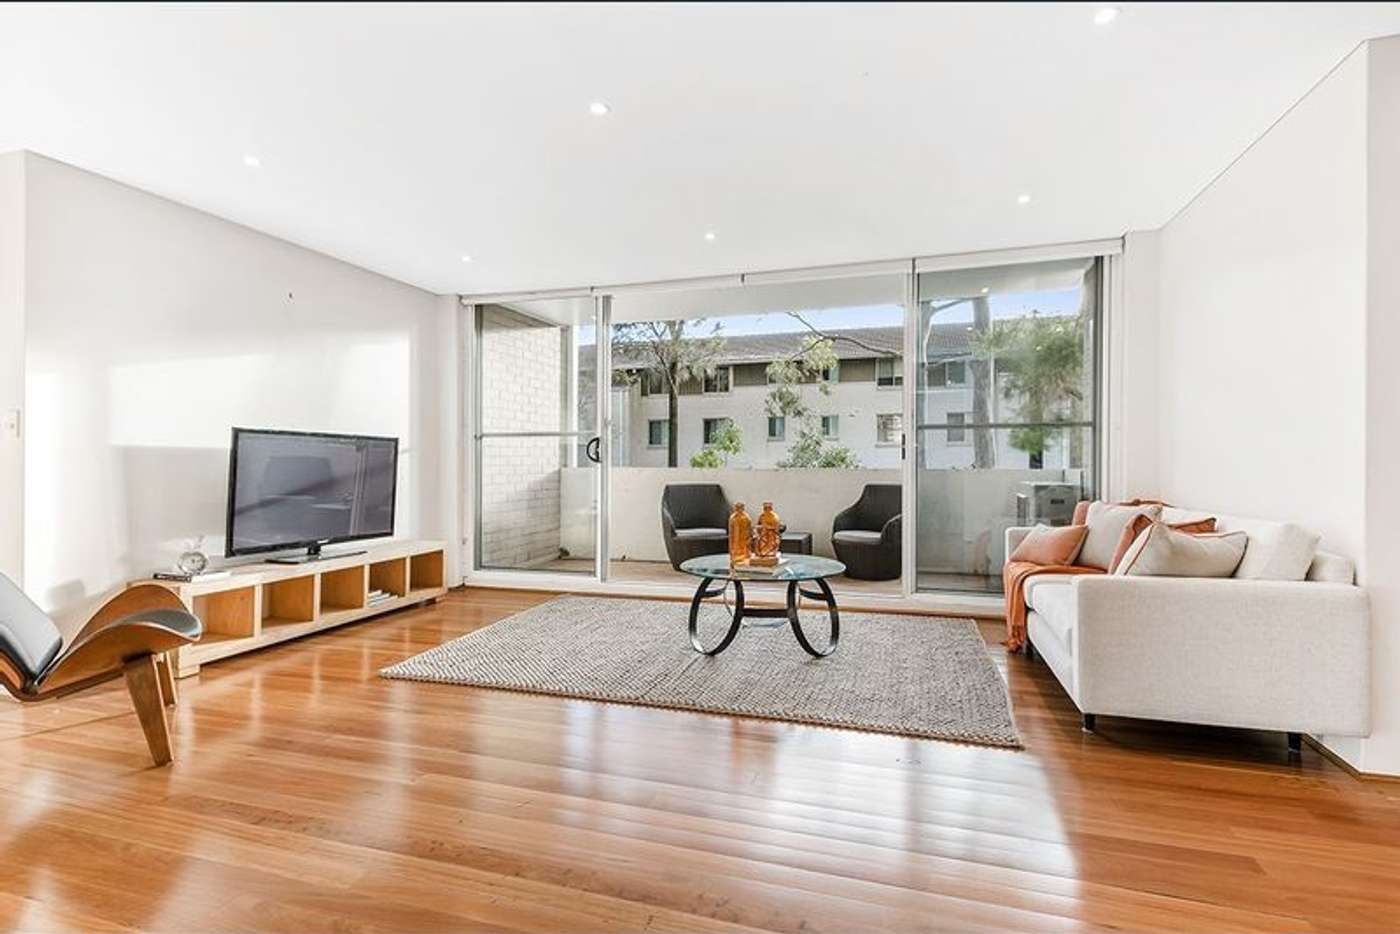 Main view of Homely apartment listing, 7/26 Charles Street, Five Dock NSW 2046